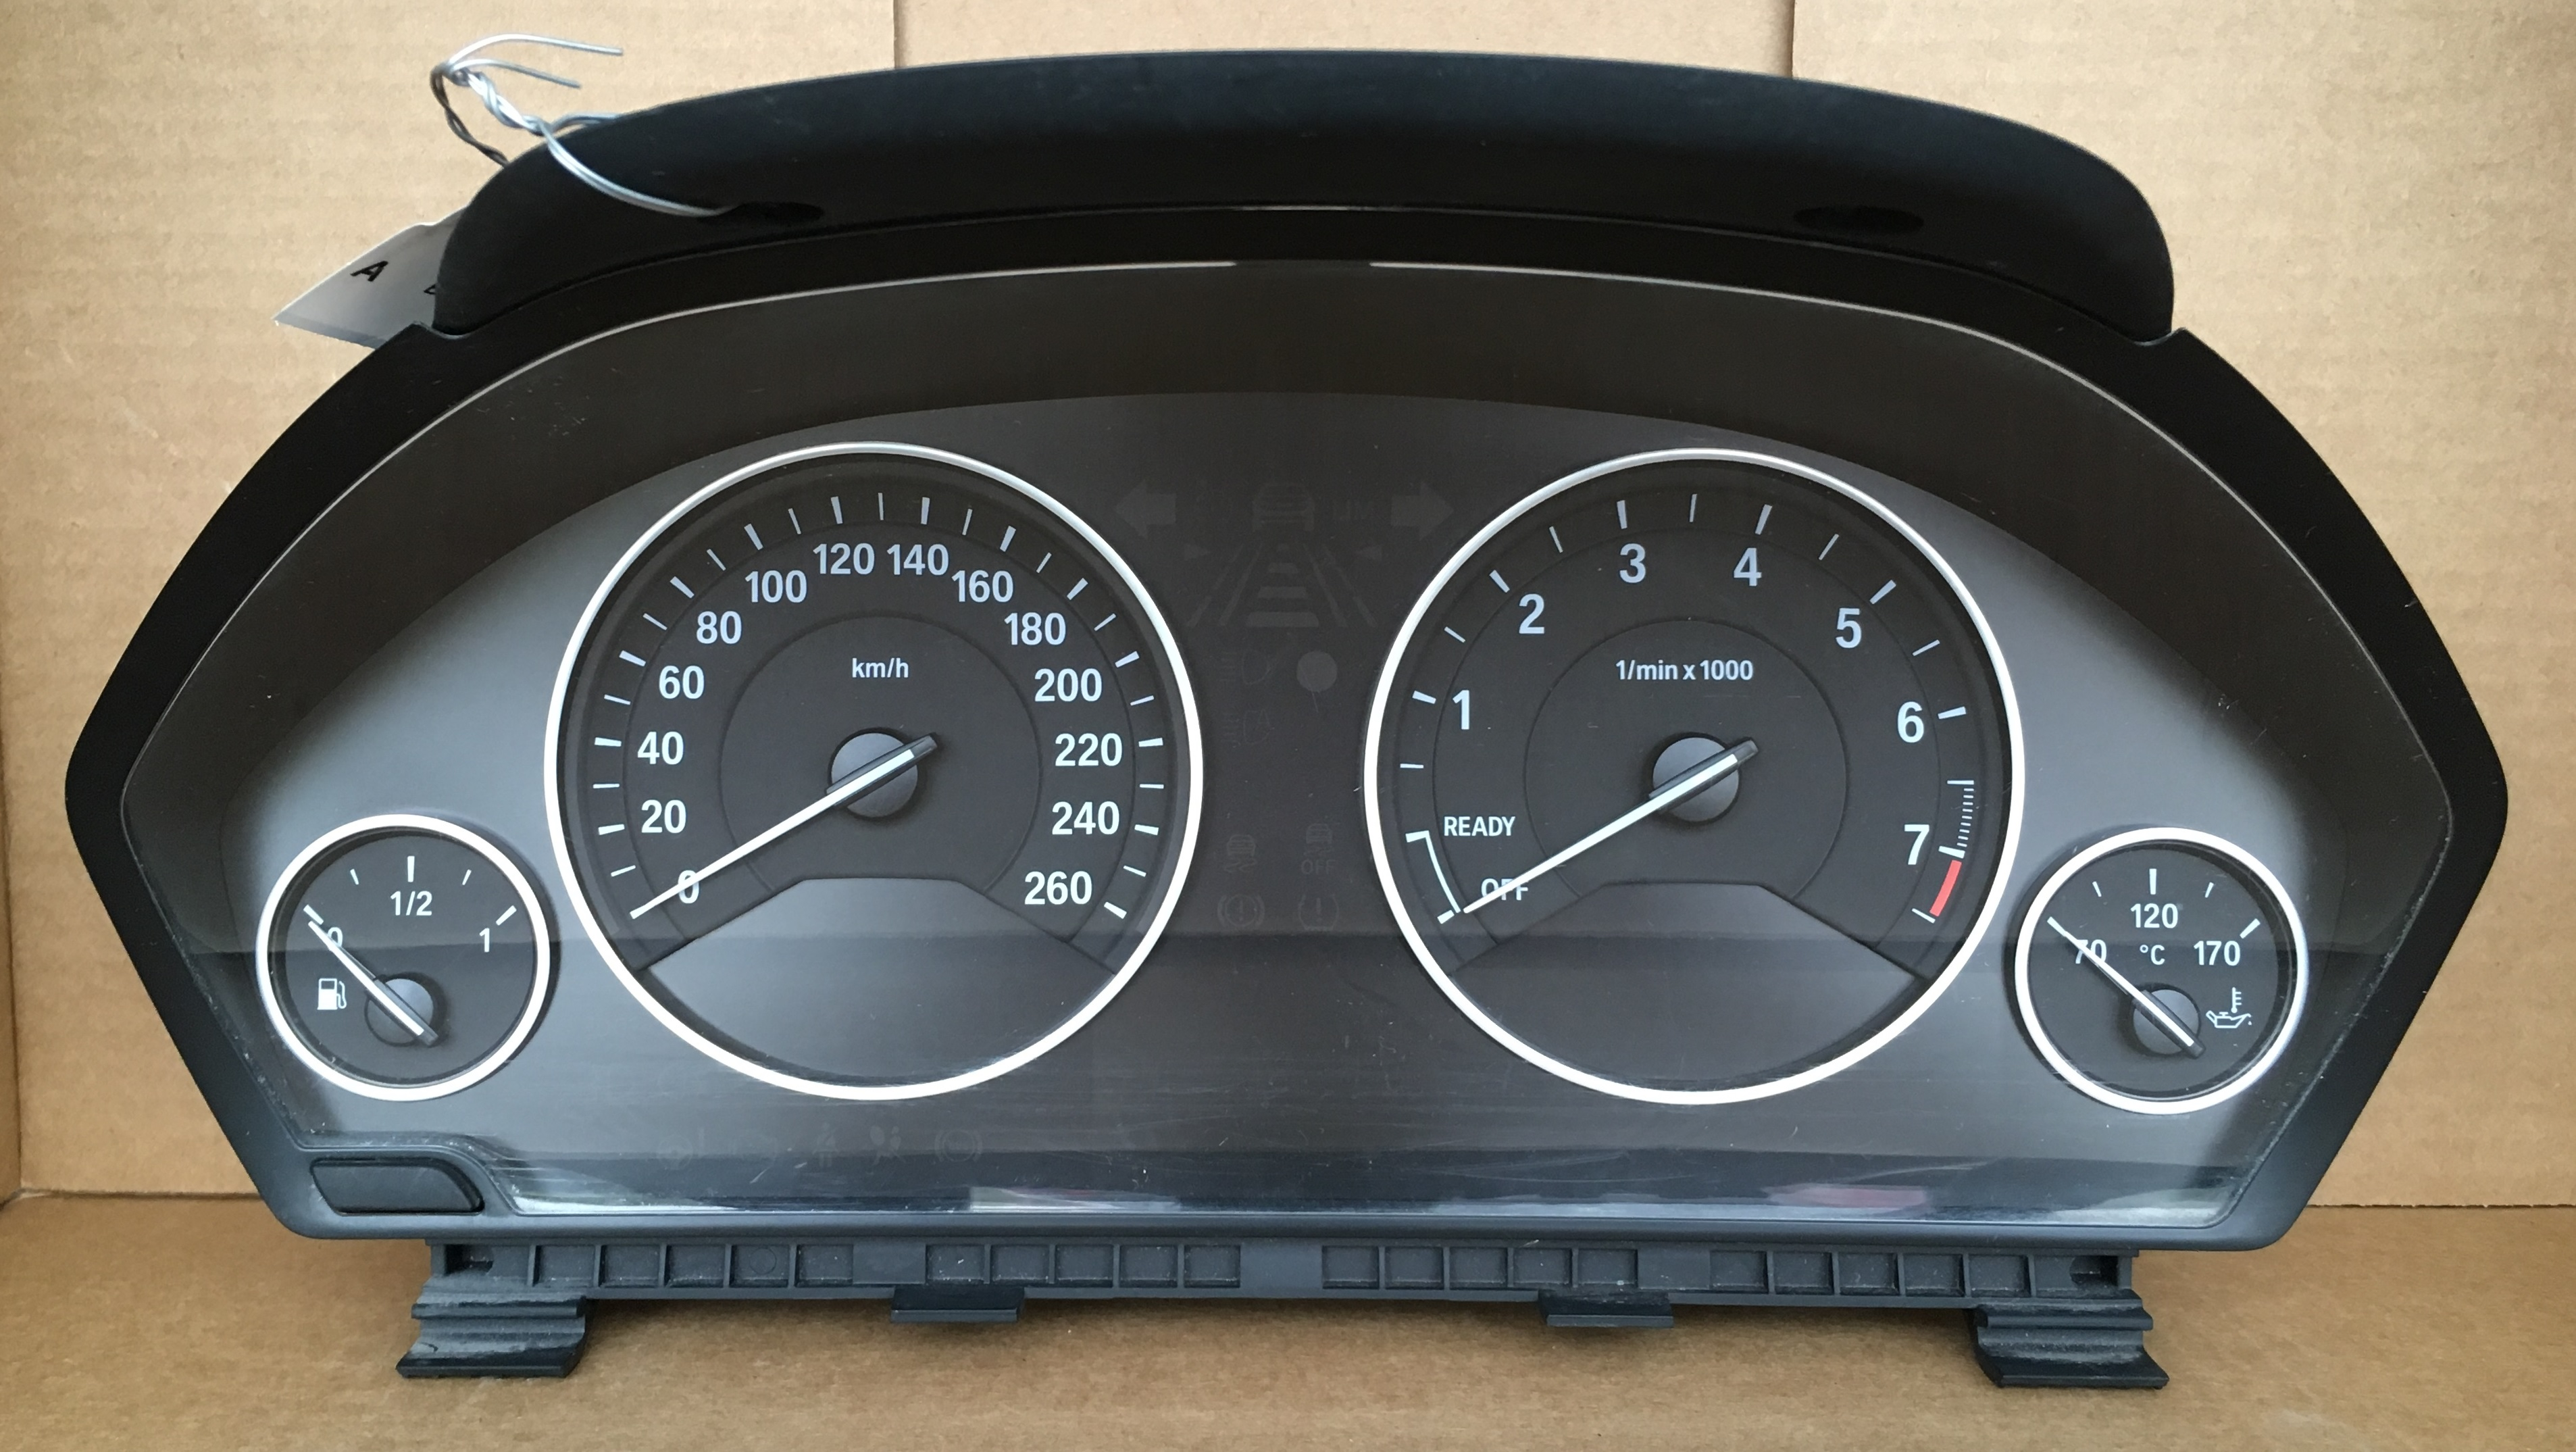 2013 Bmw 328i Used Dashboard Instrument Cluster For Sale Km H Dashboard Instrument Cluster